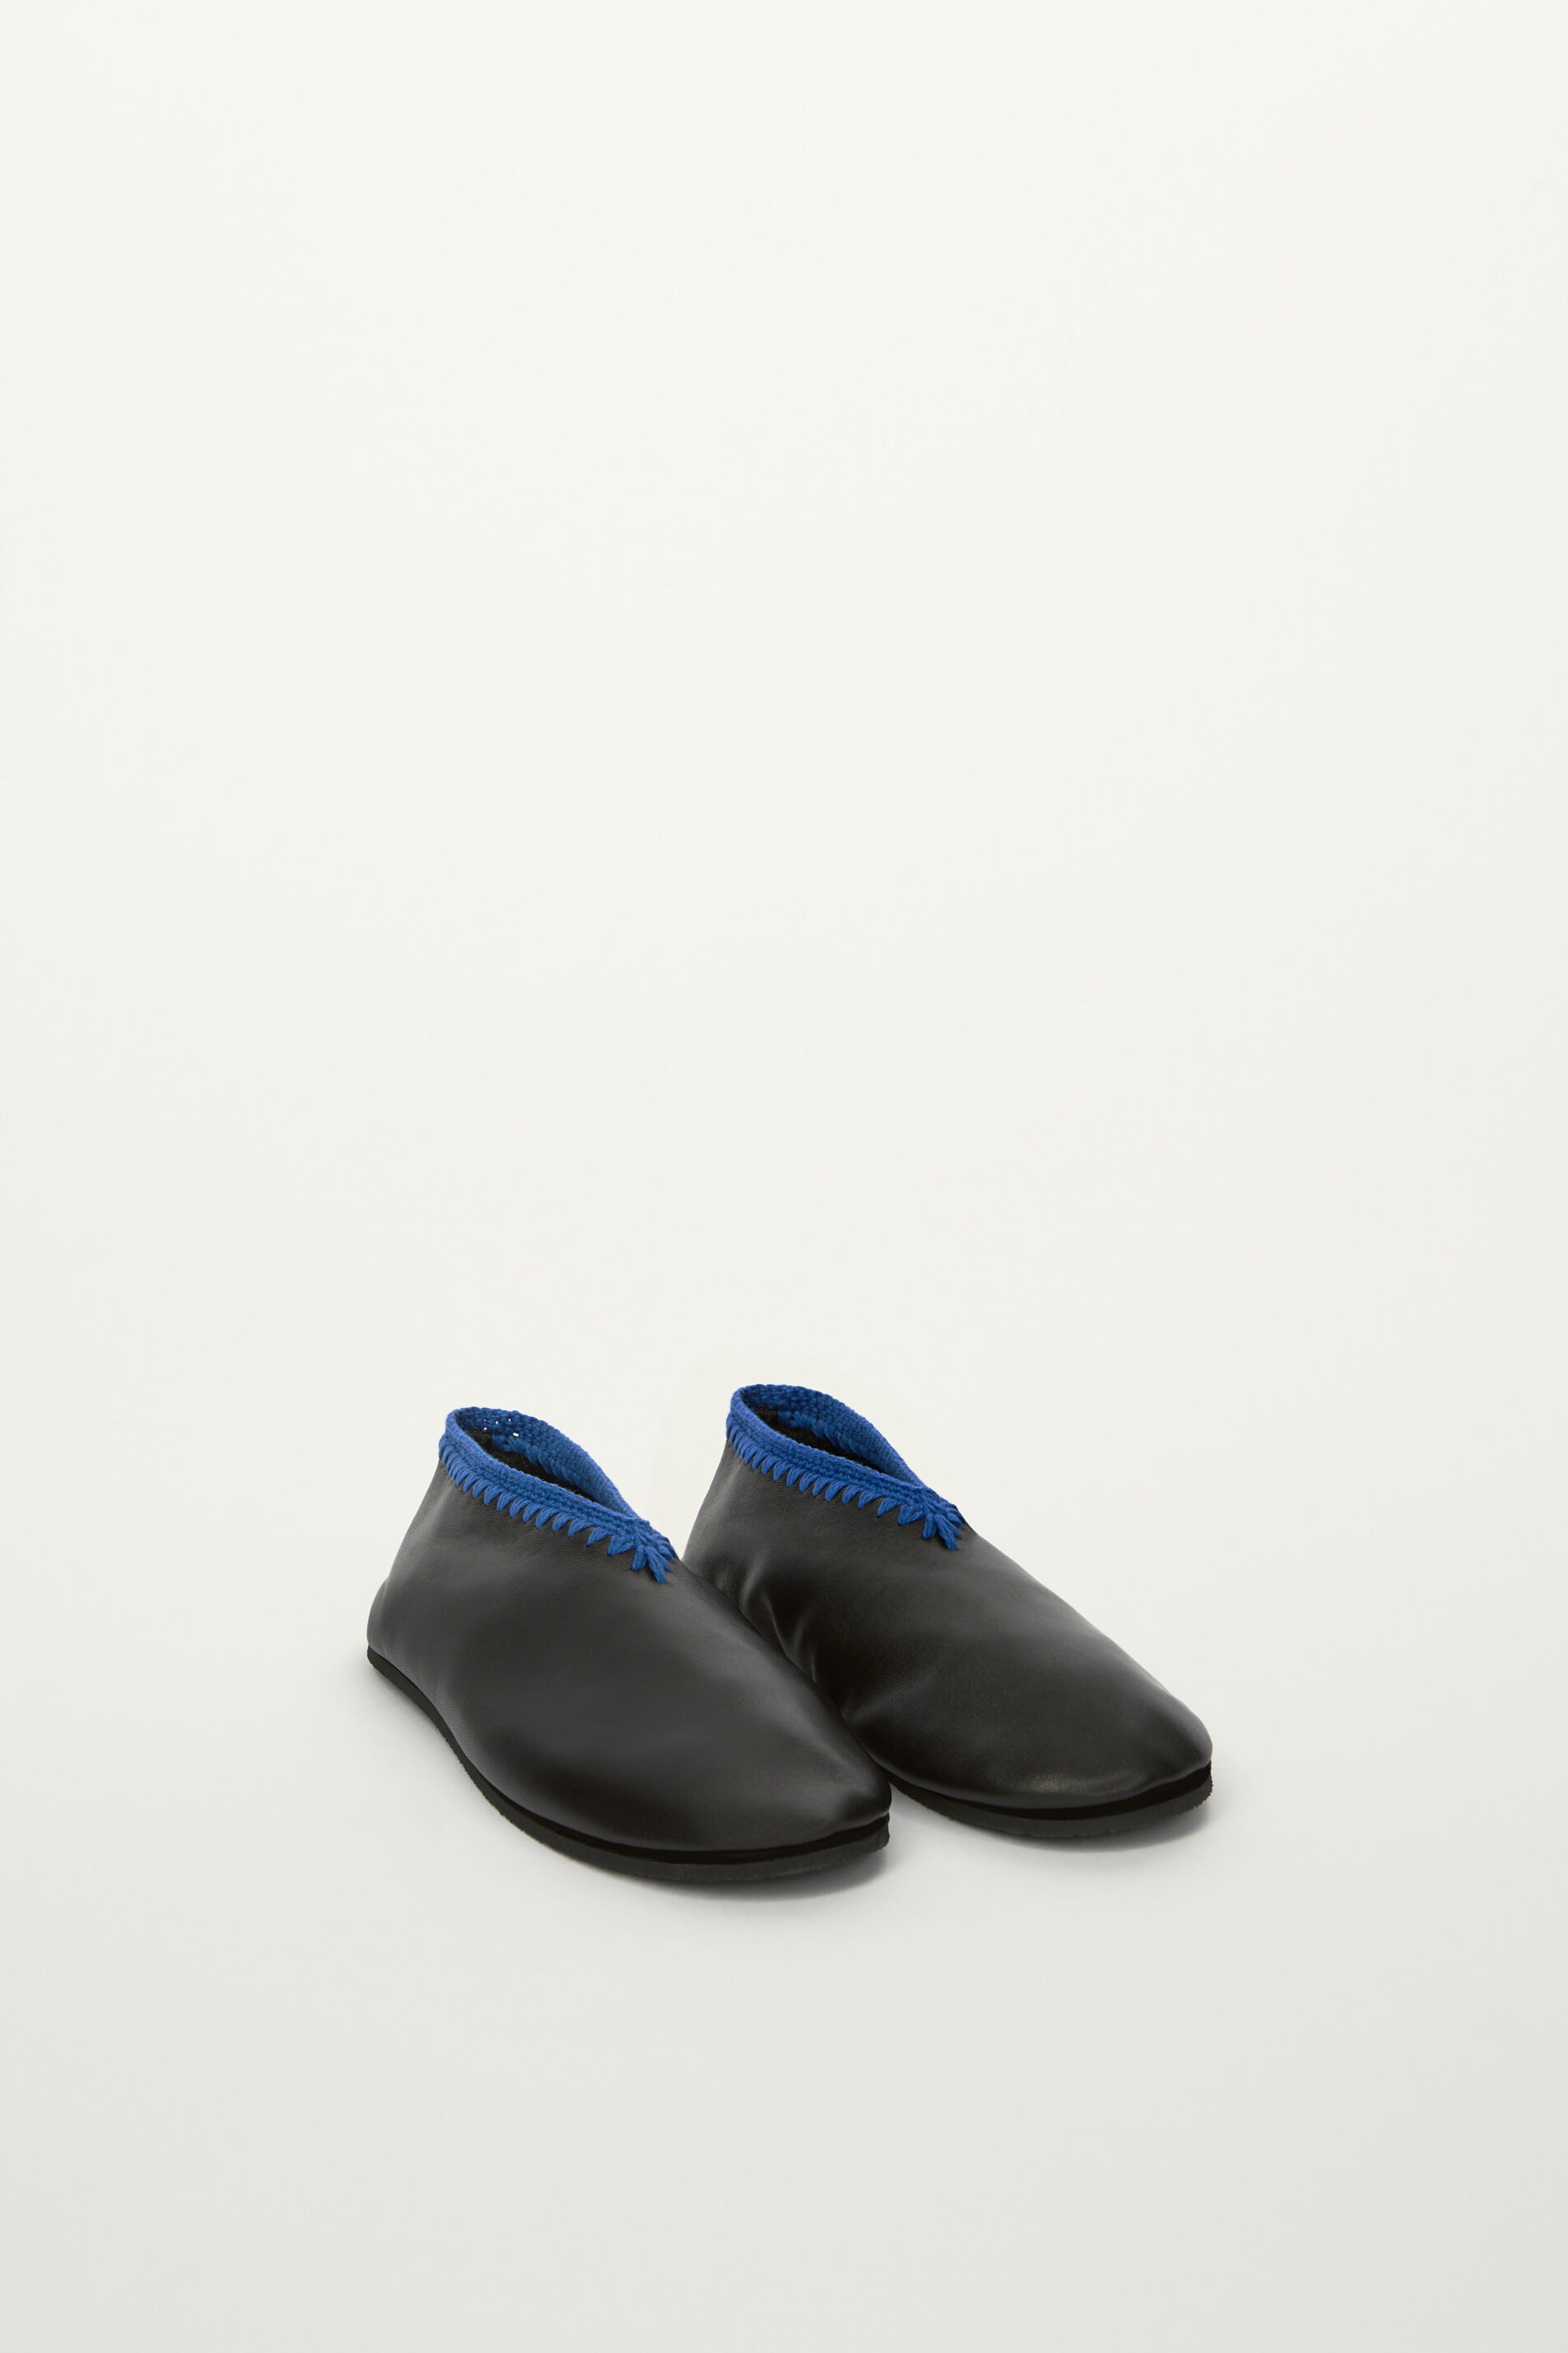 Slippers, black, large